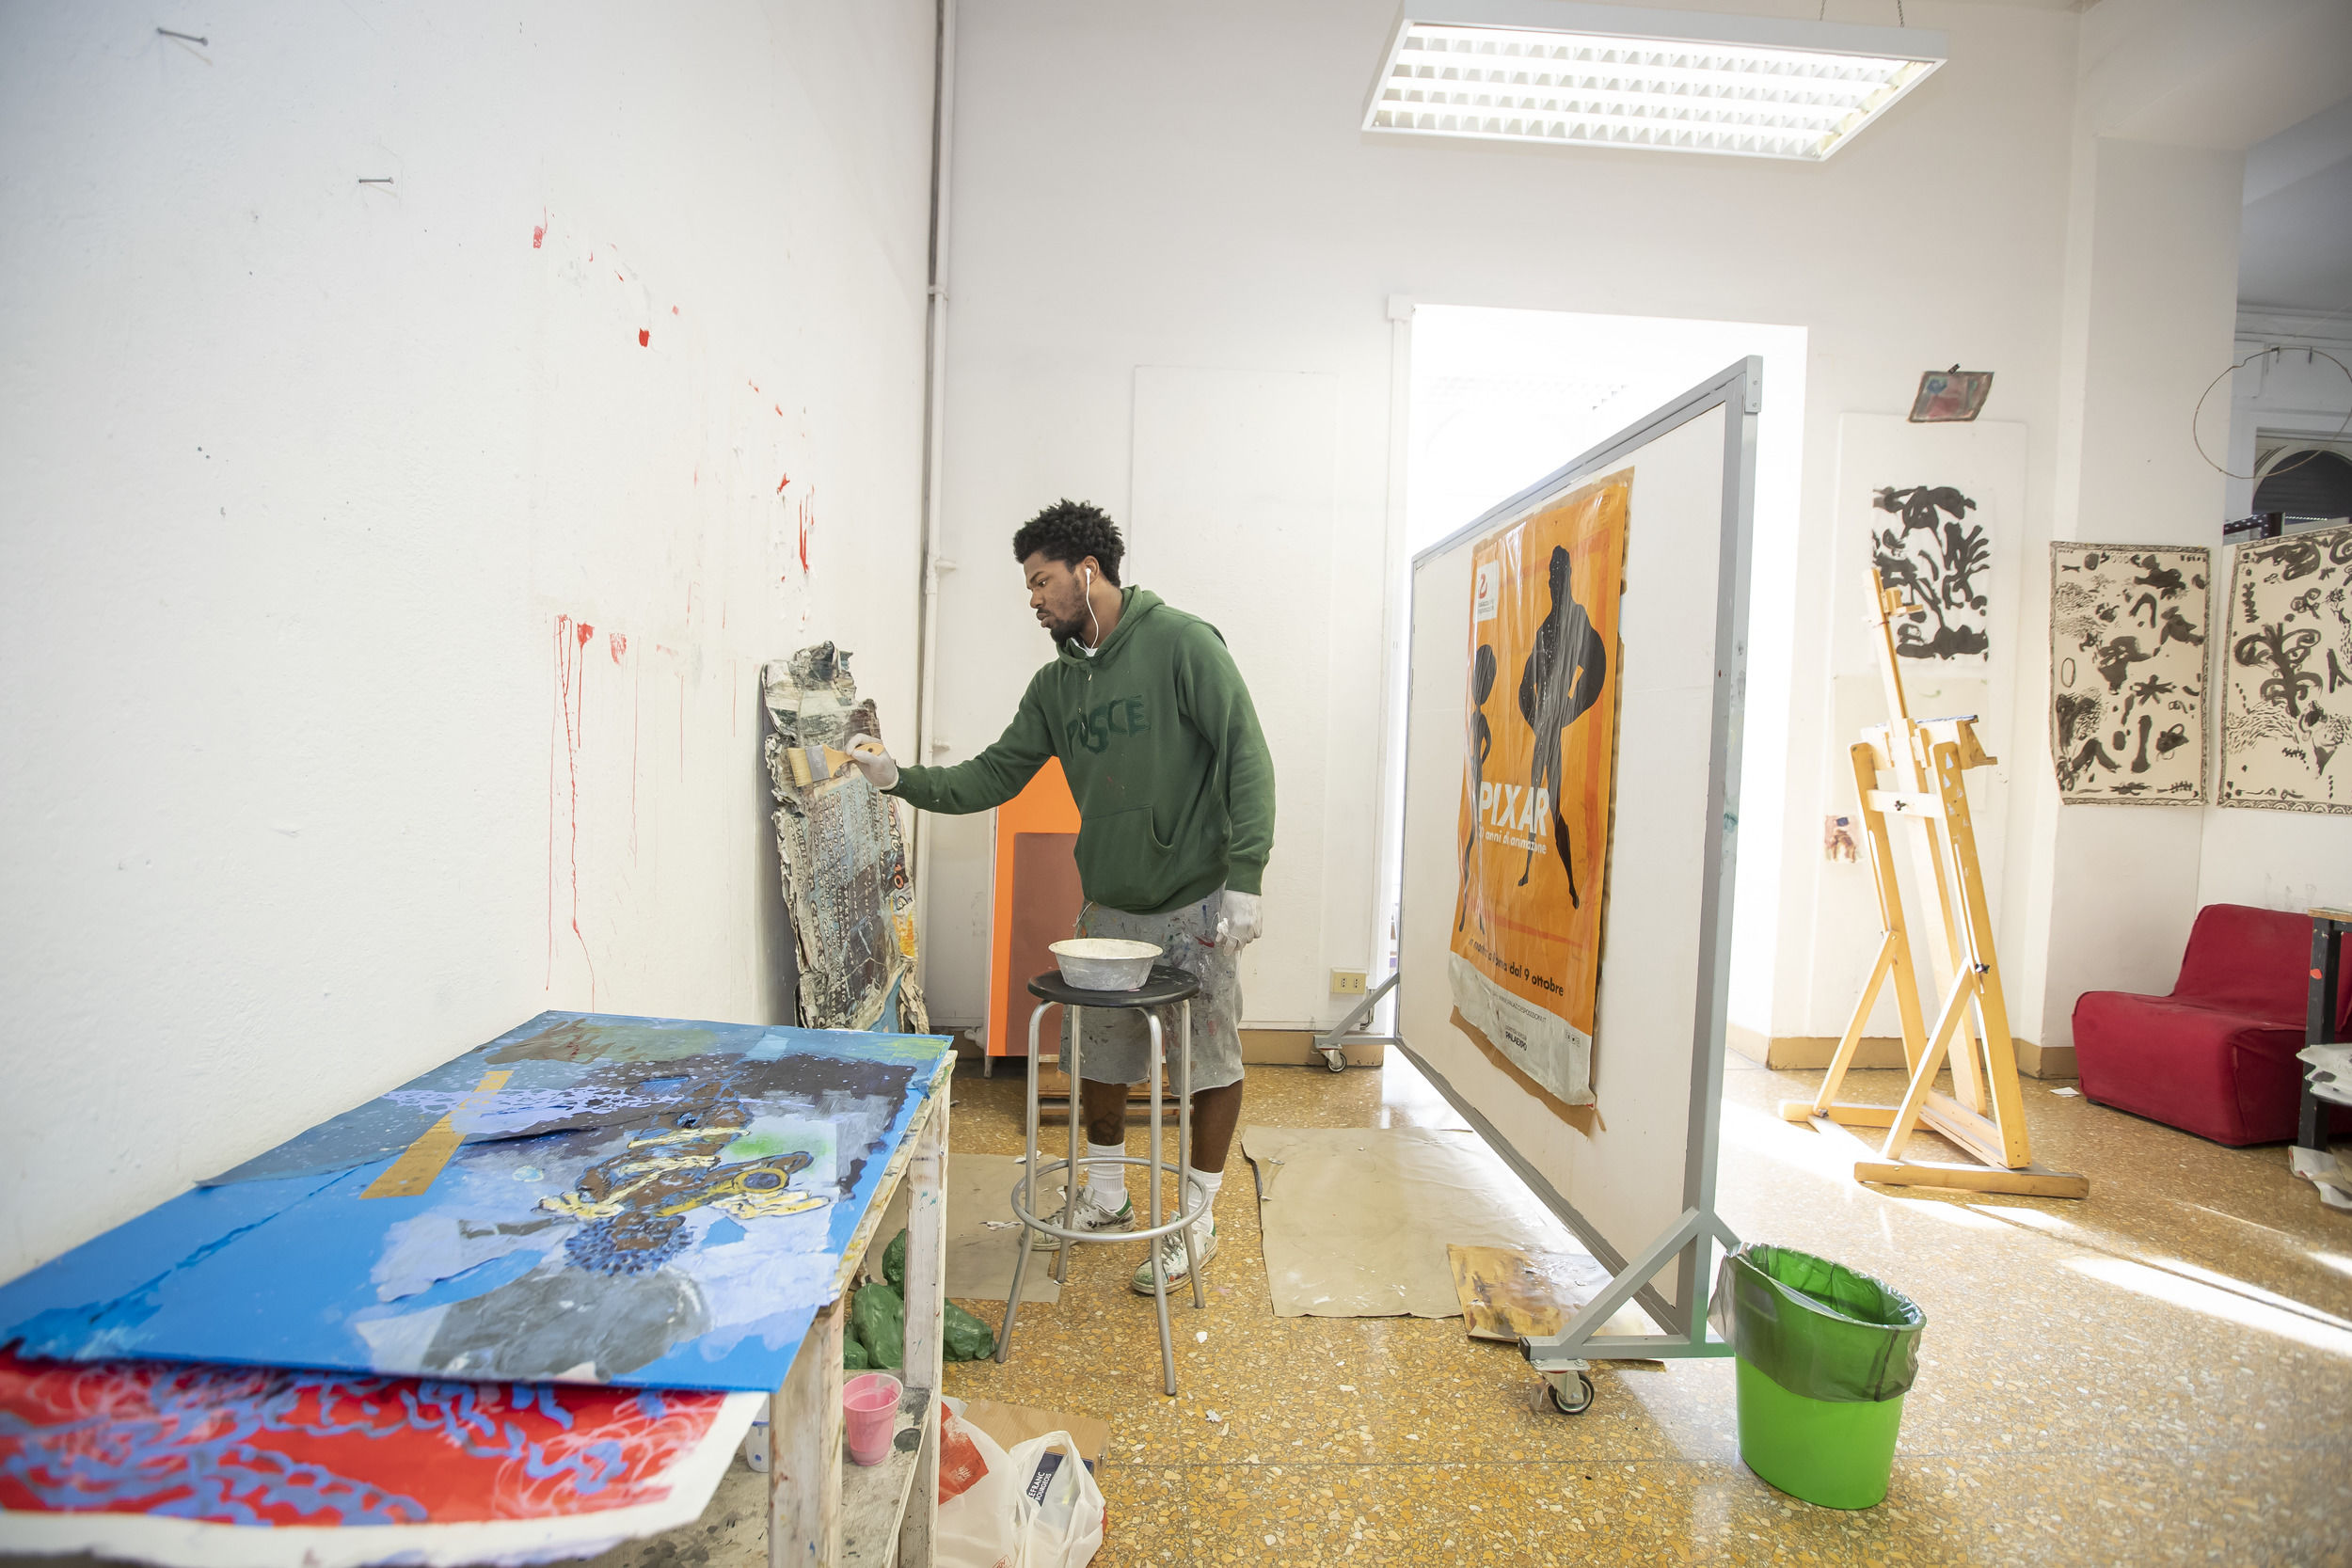 A student working in an art studio at Temple Rome.